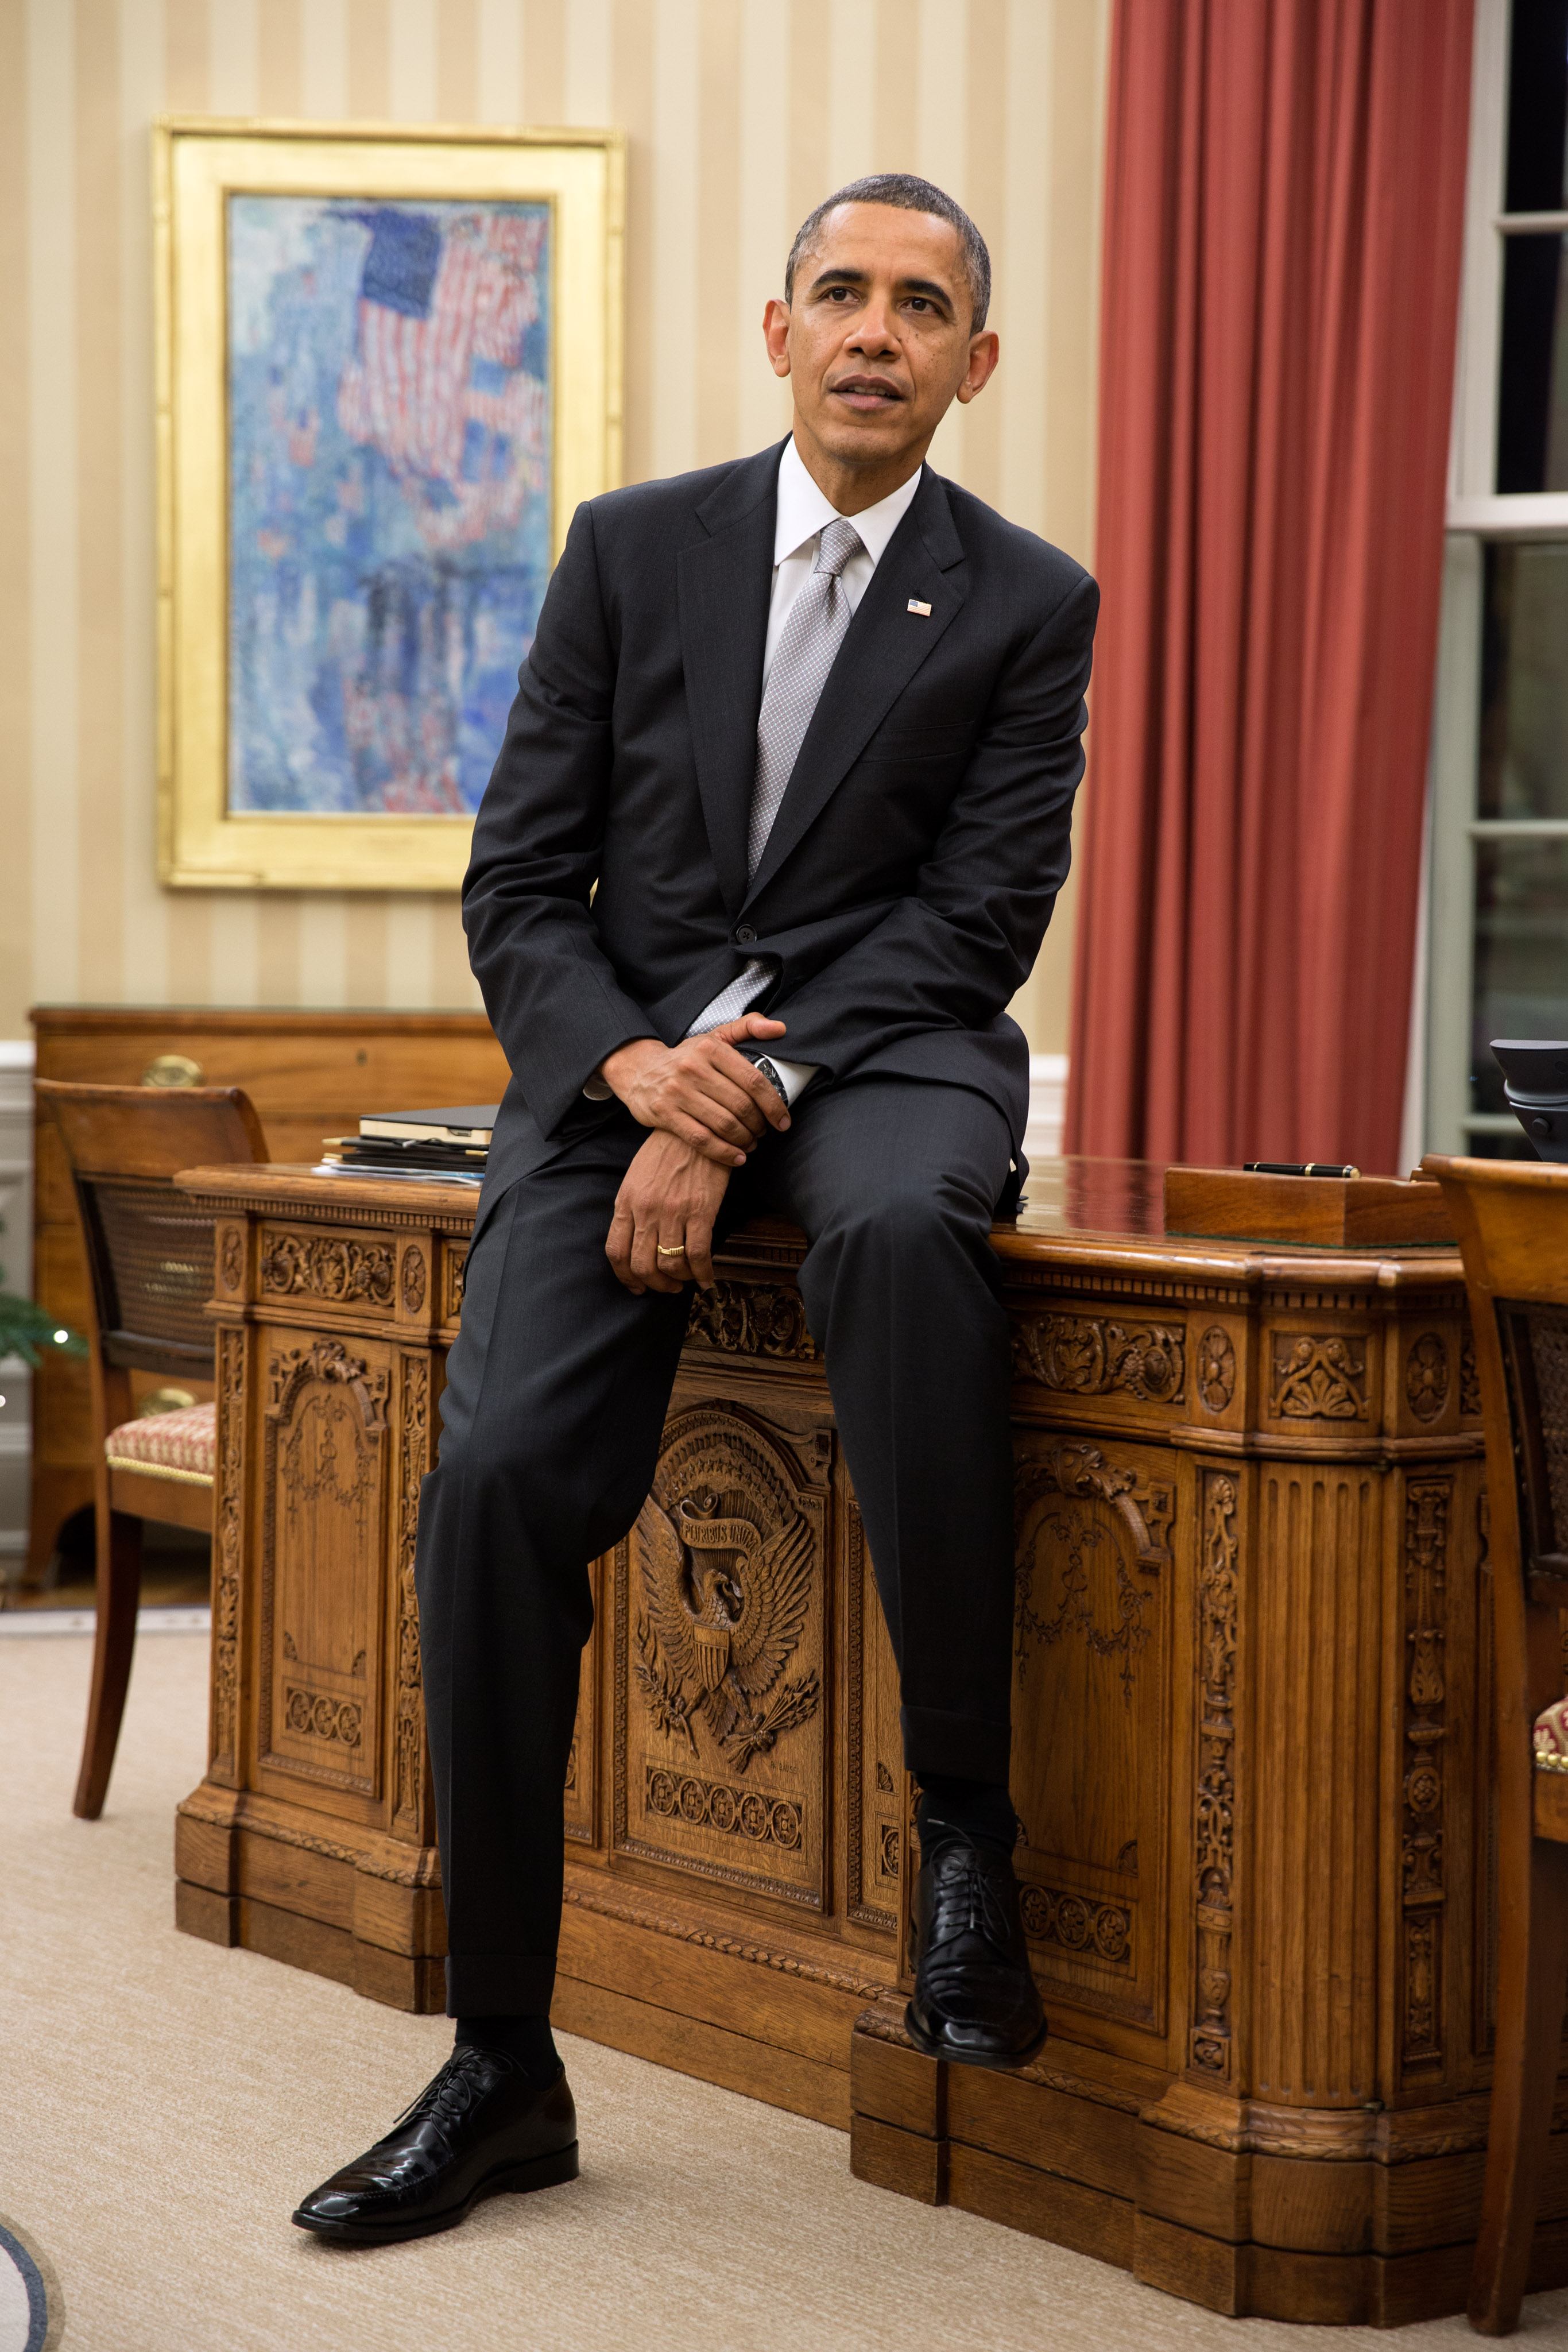 File:Barack Obama sitting on the Resolute Desk.jpg - Wikimedia Commons